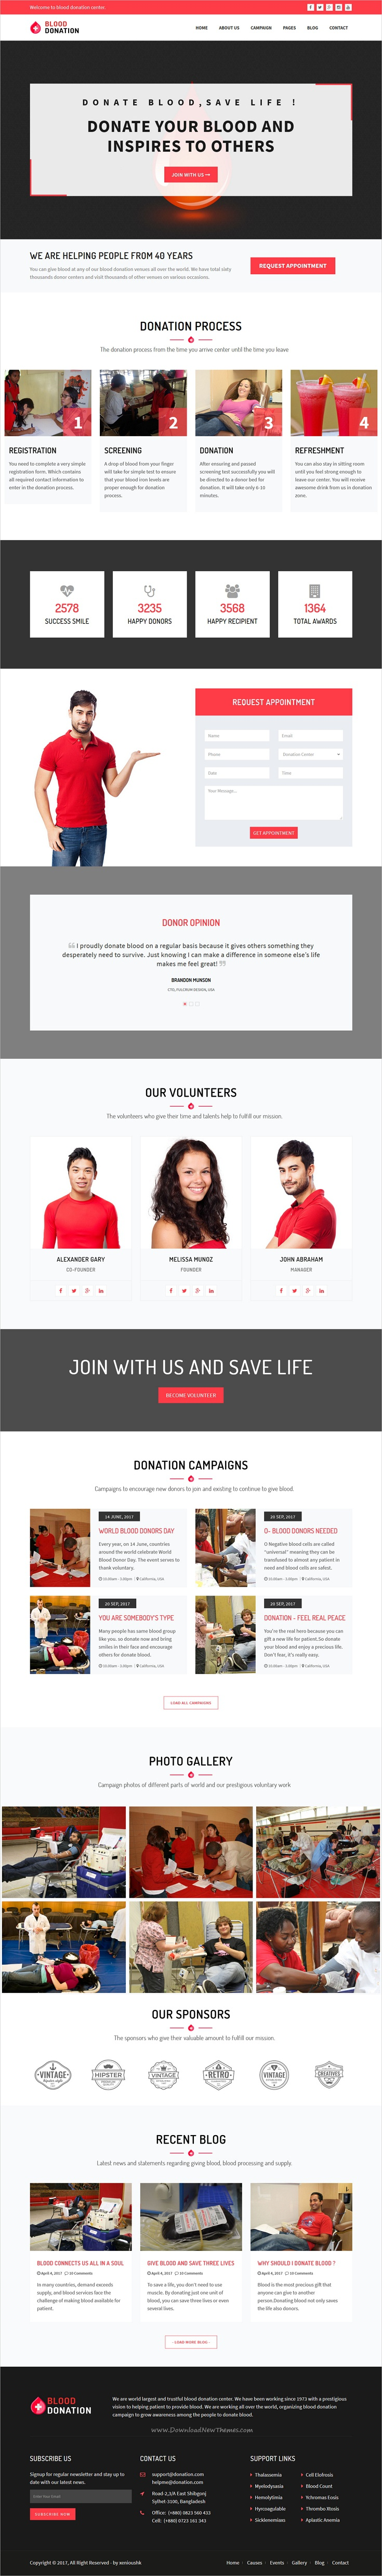 Pin By Mukto On Websites Pinterest Templates Website Template